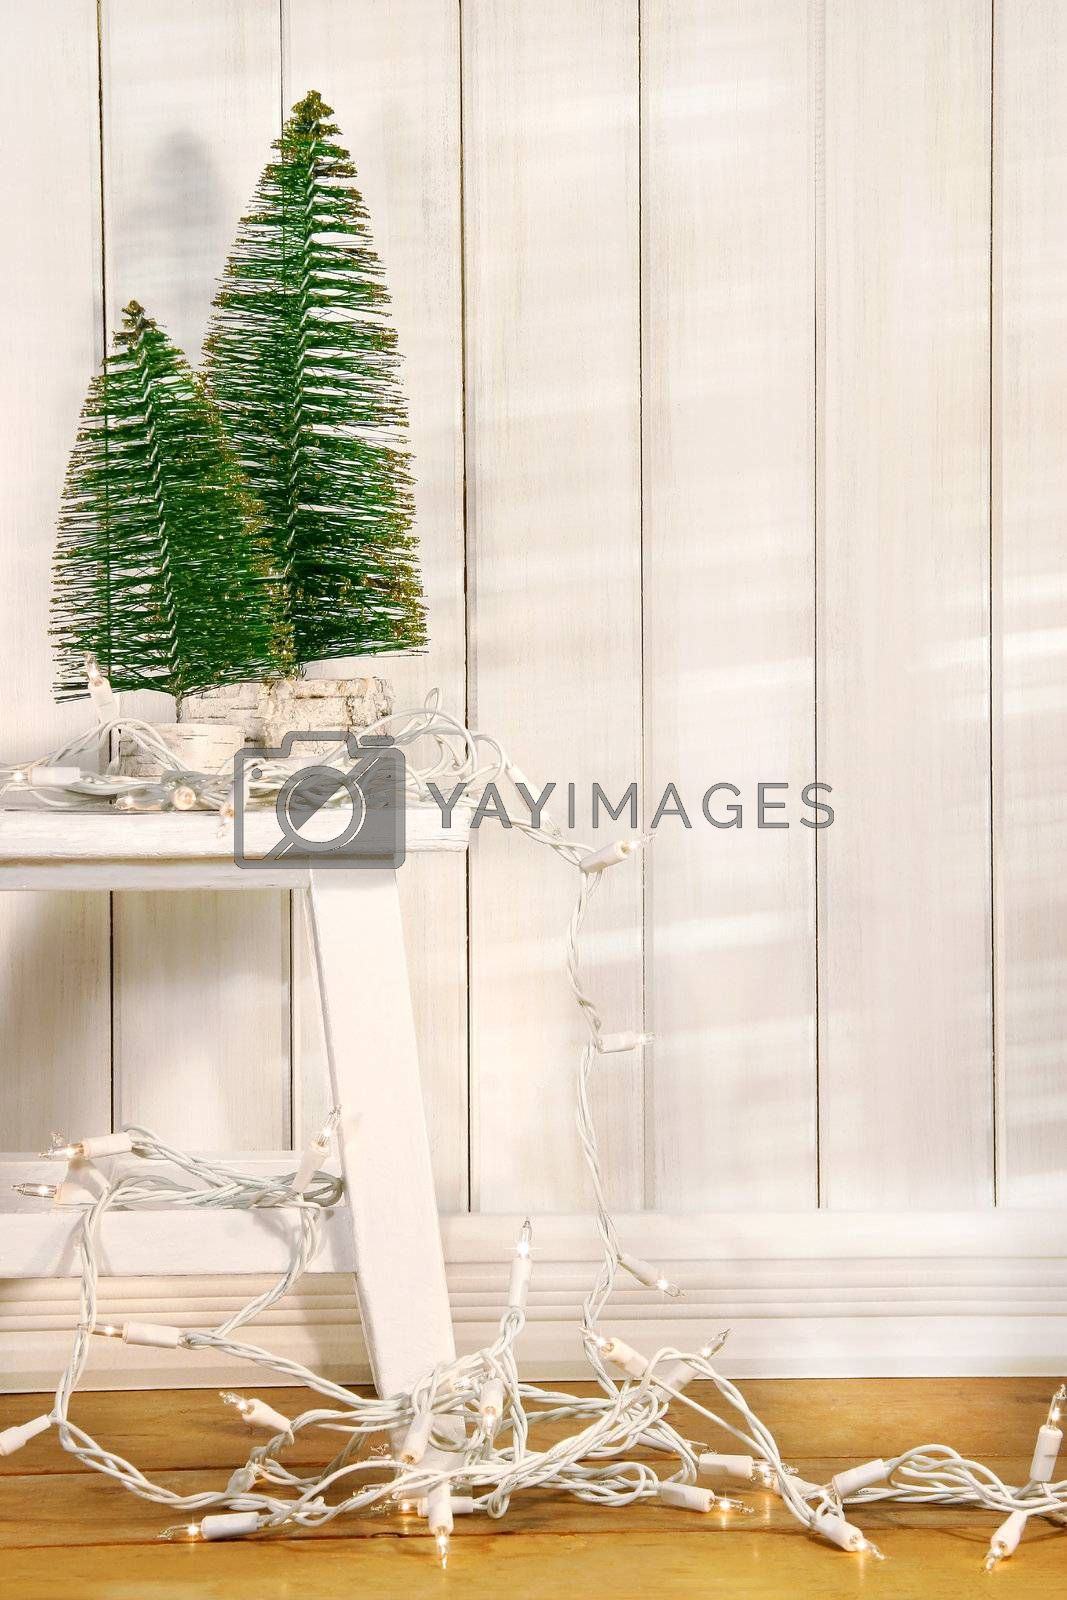 White tree lights hanging from old bench with little green trees